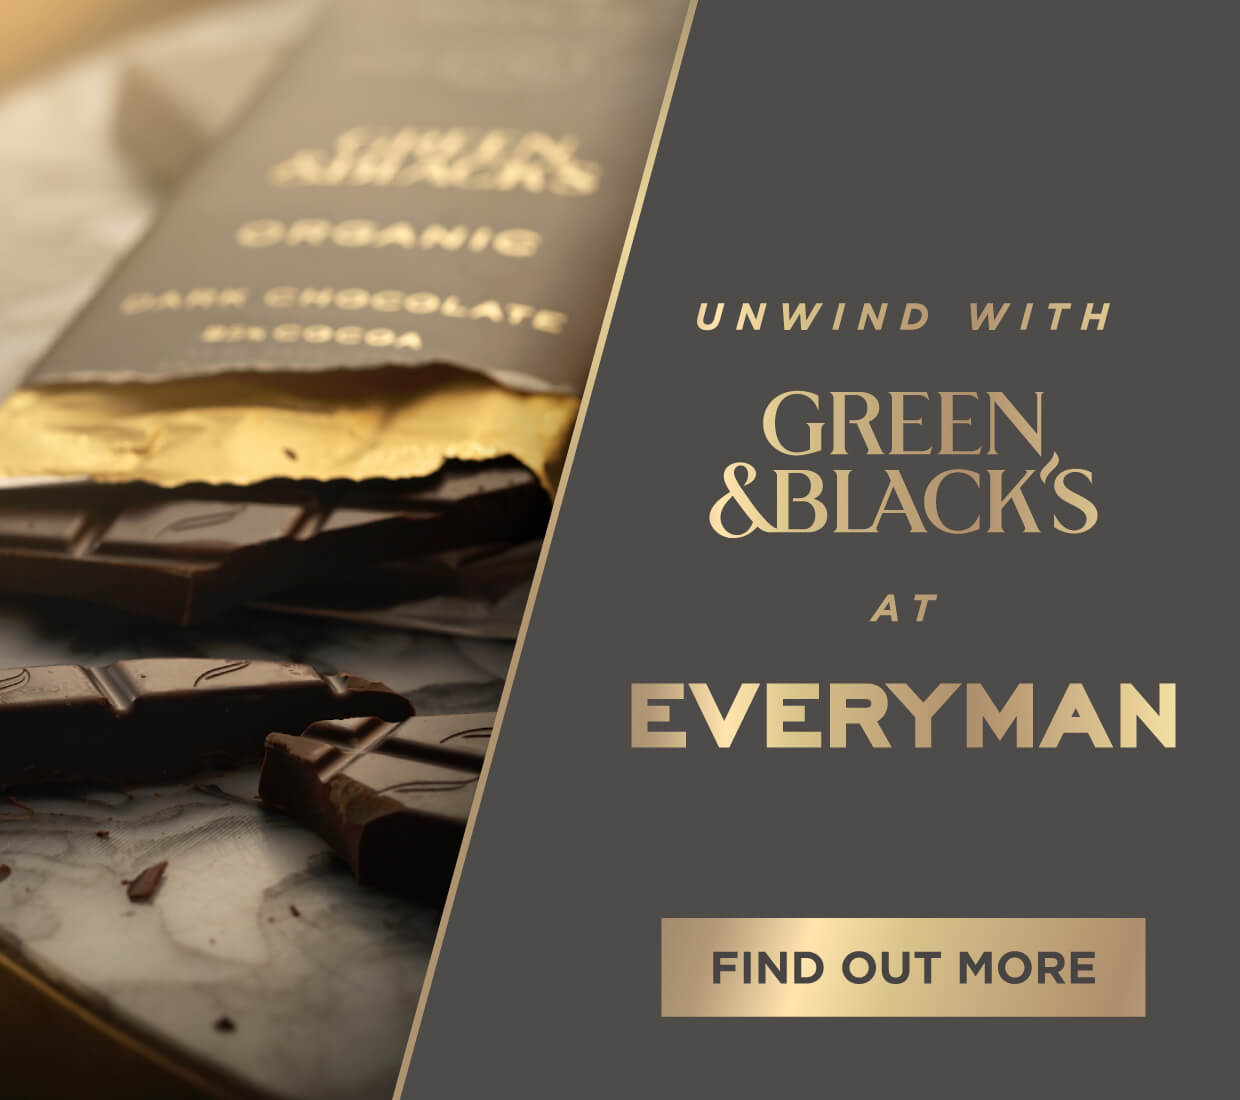 Green & Blacks Everyman Partnership